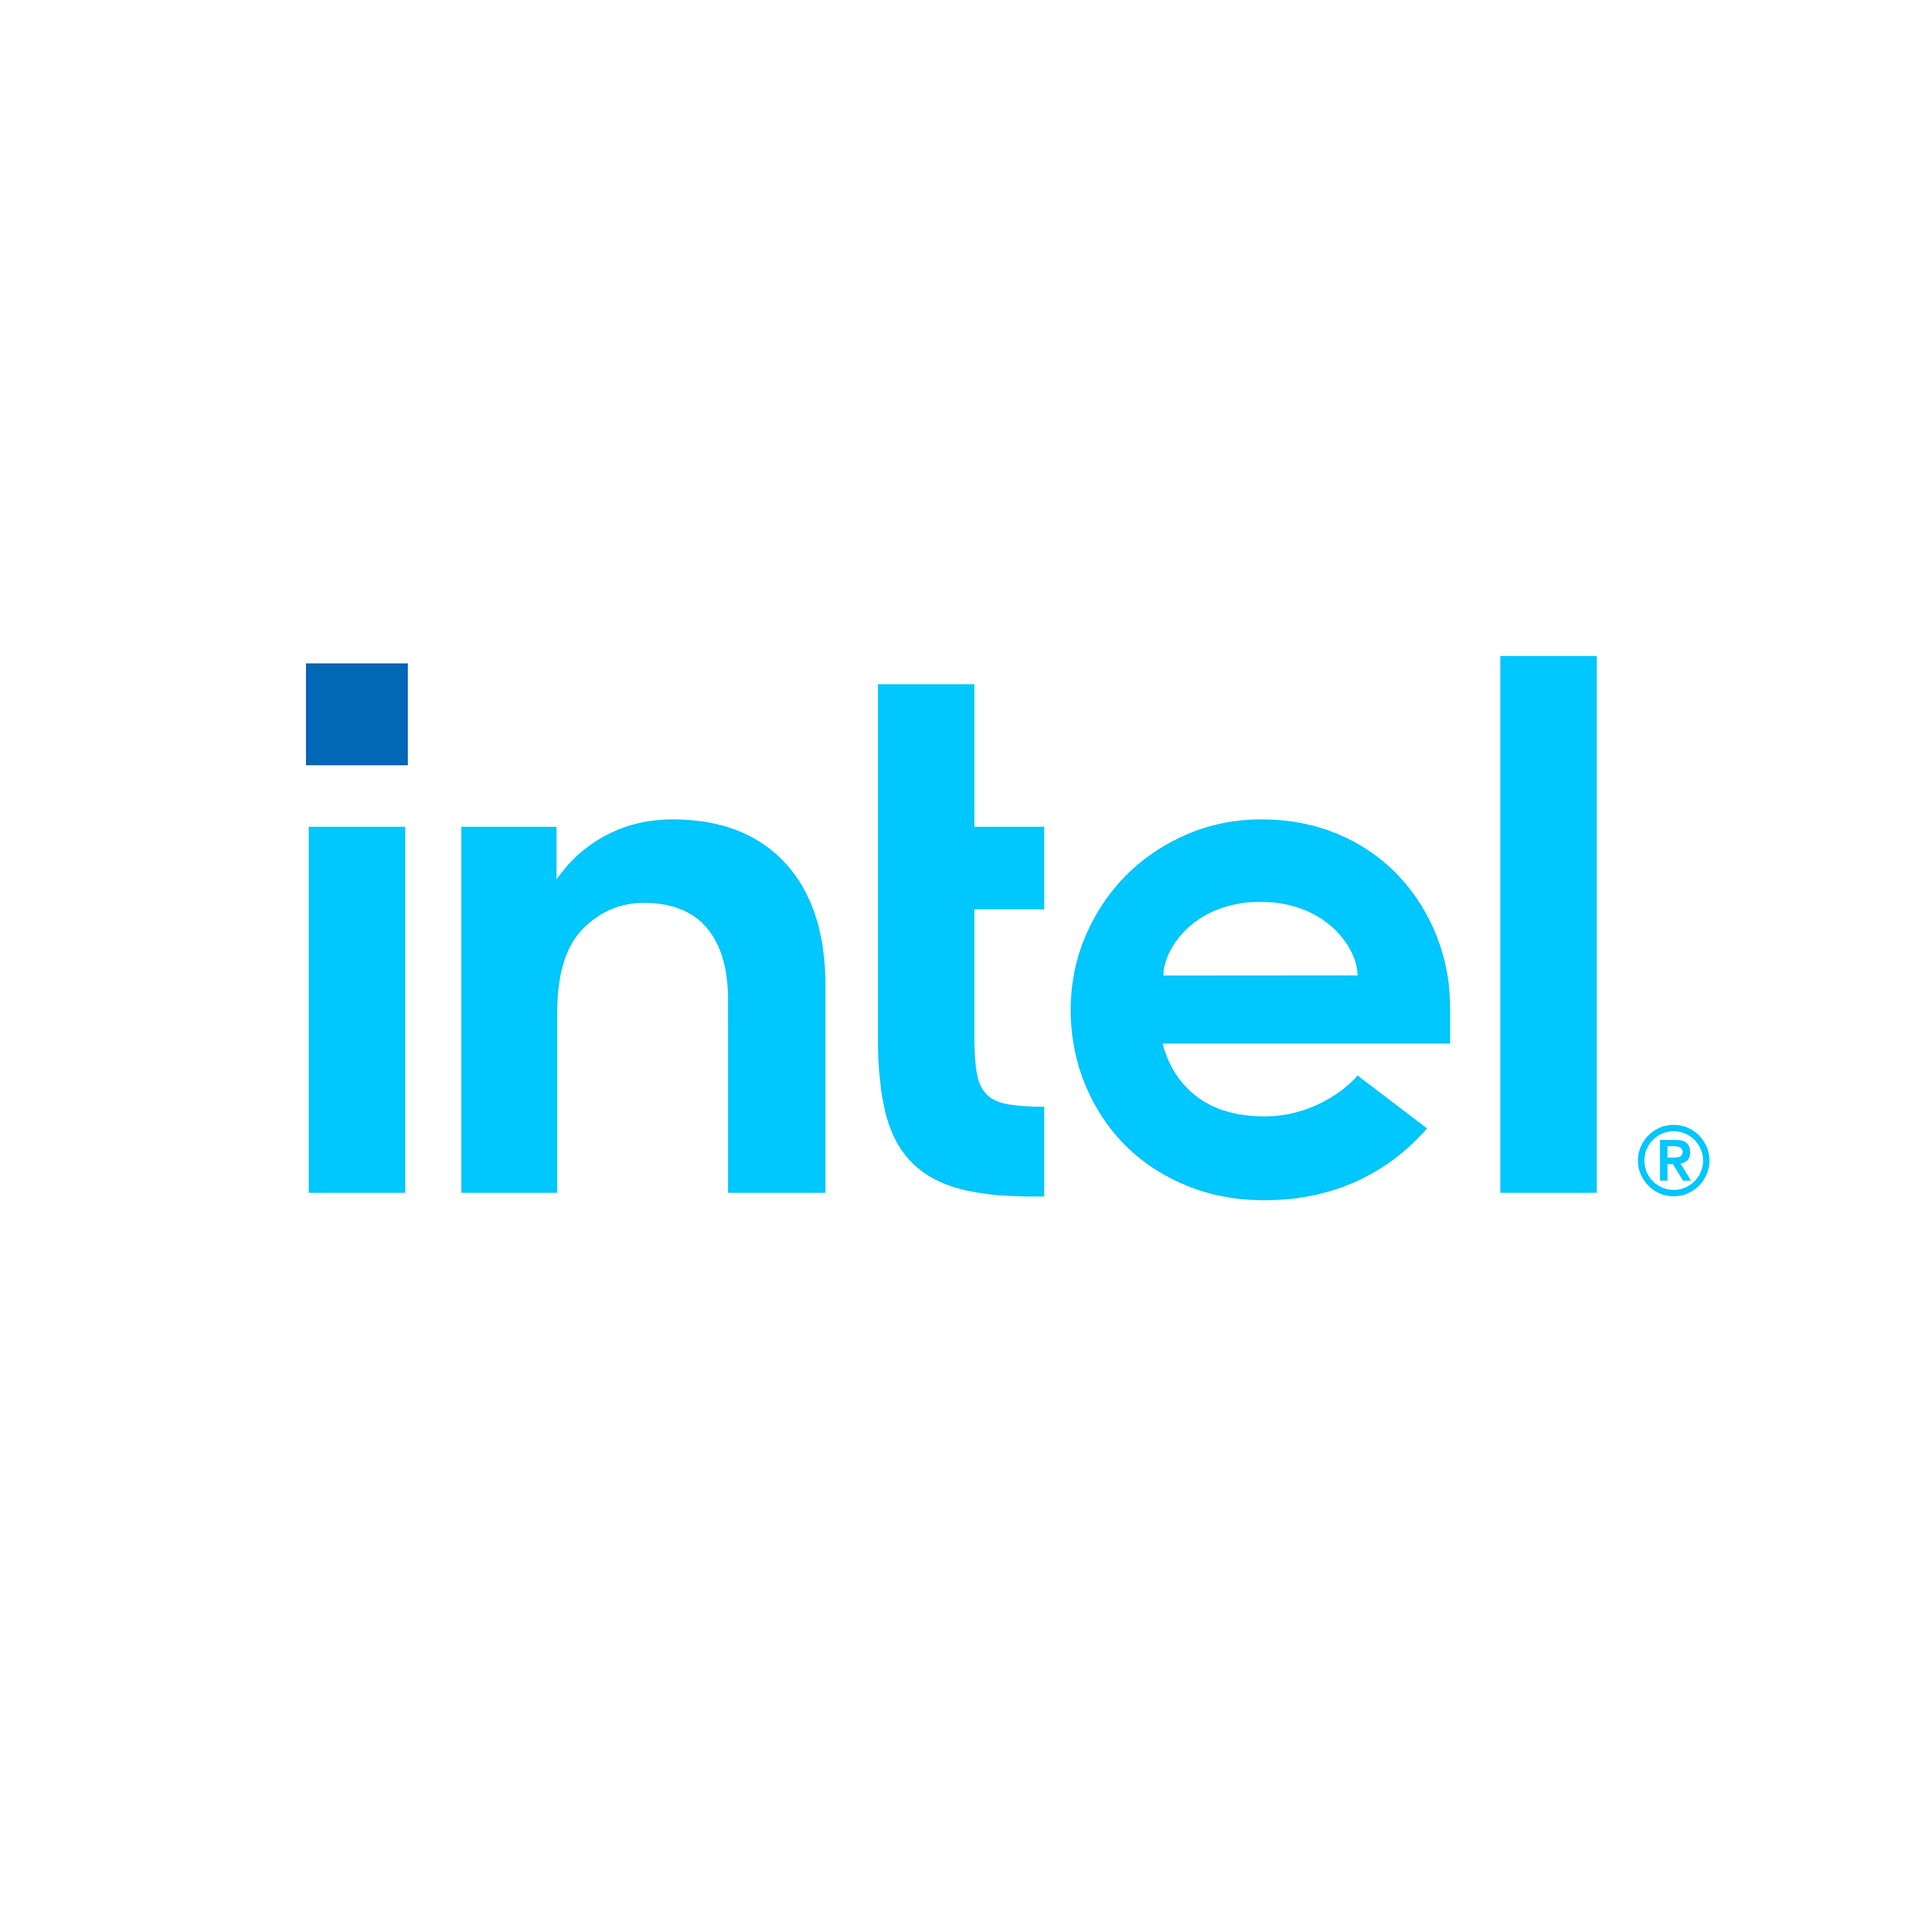 Intel's vision products helps boost the performance of Agent Vi's computer vision-based security software